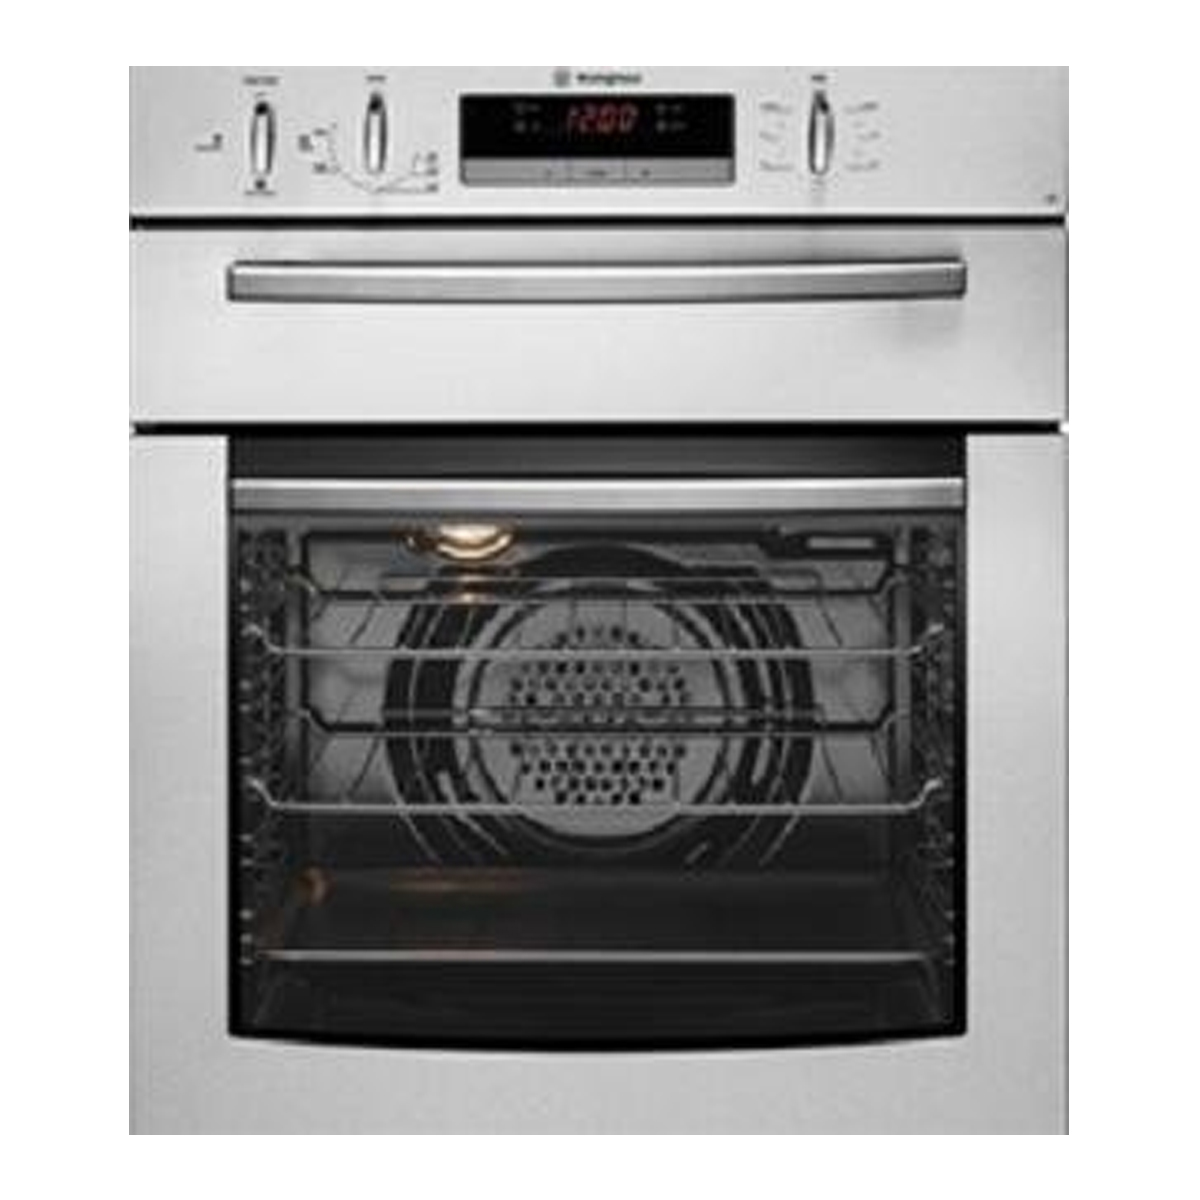 Westinghouse GGR475S 600mm/60cm Gas Wall Oven 89141